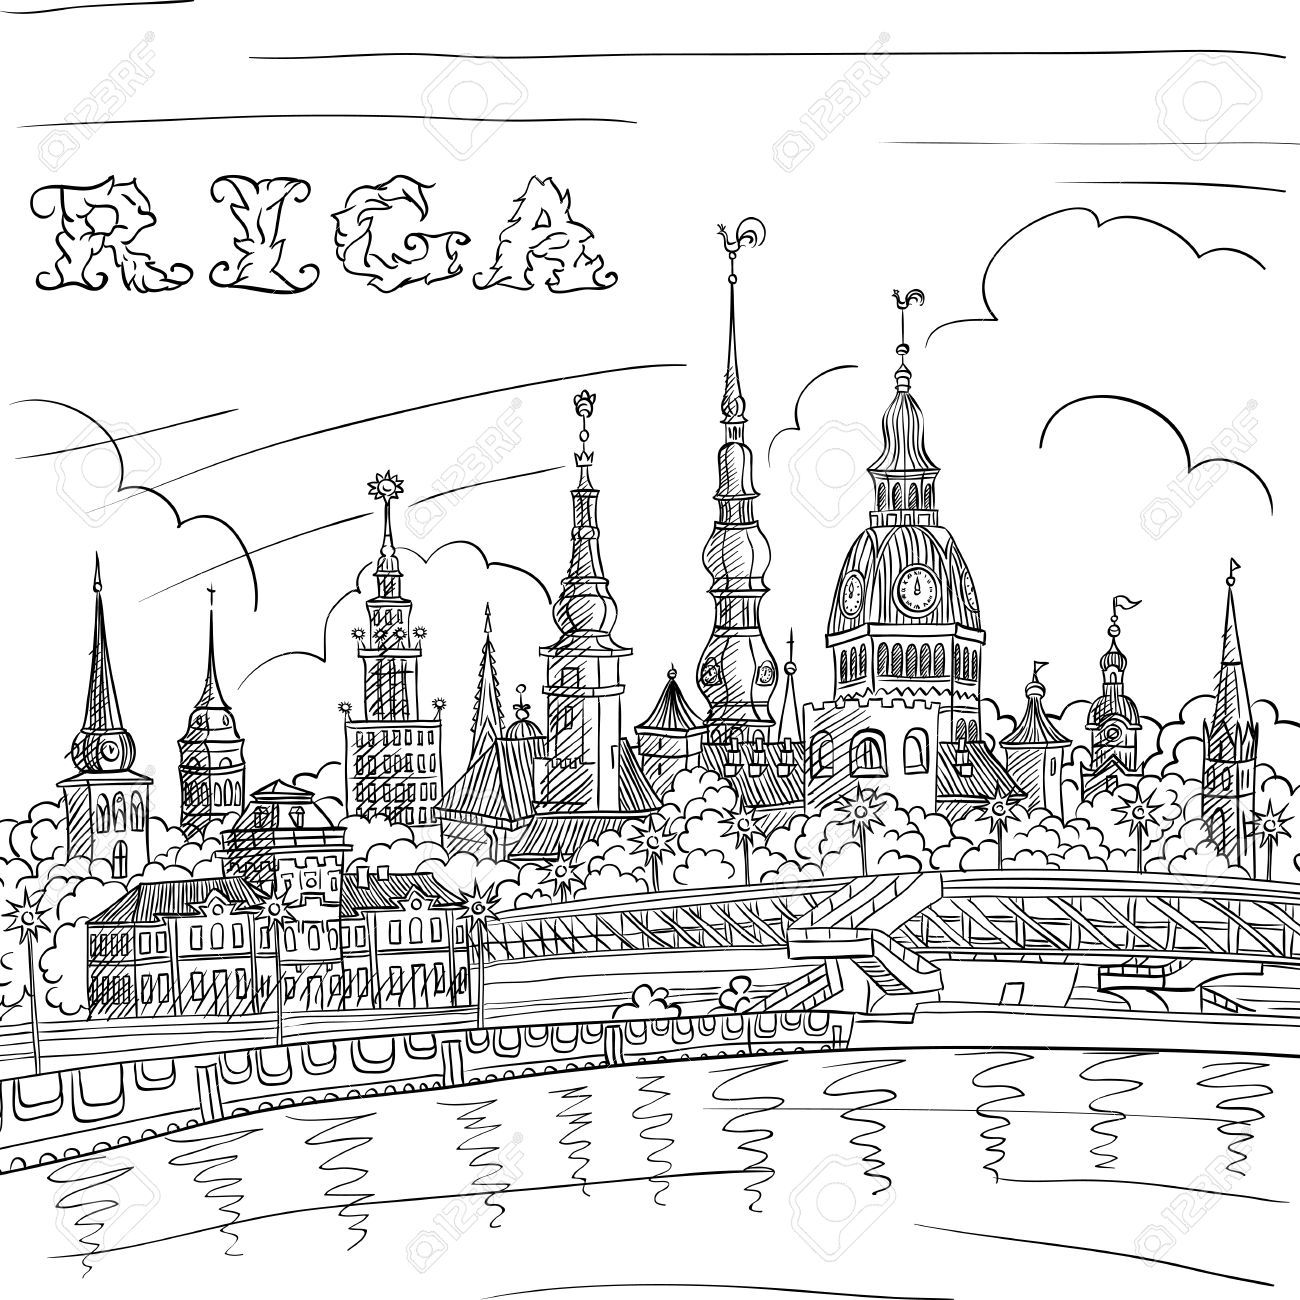 1300x1300 Vector Black And White Hand Drawing, Sketch Of Old Town And River